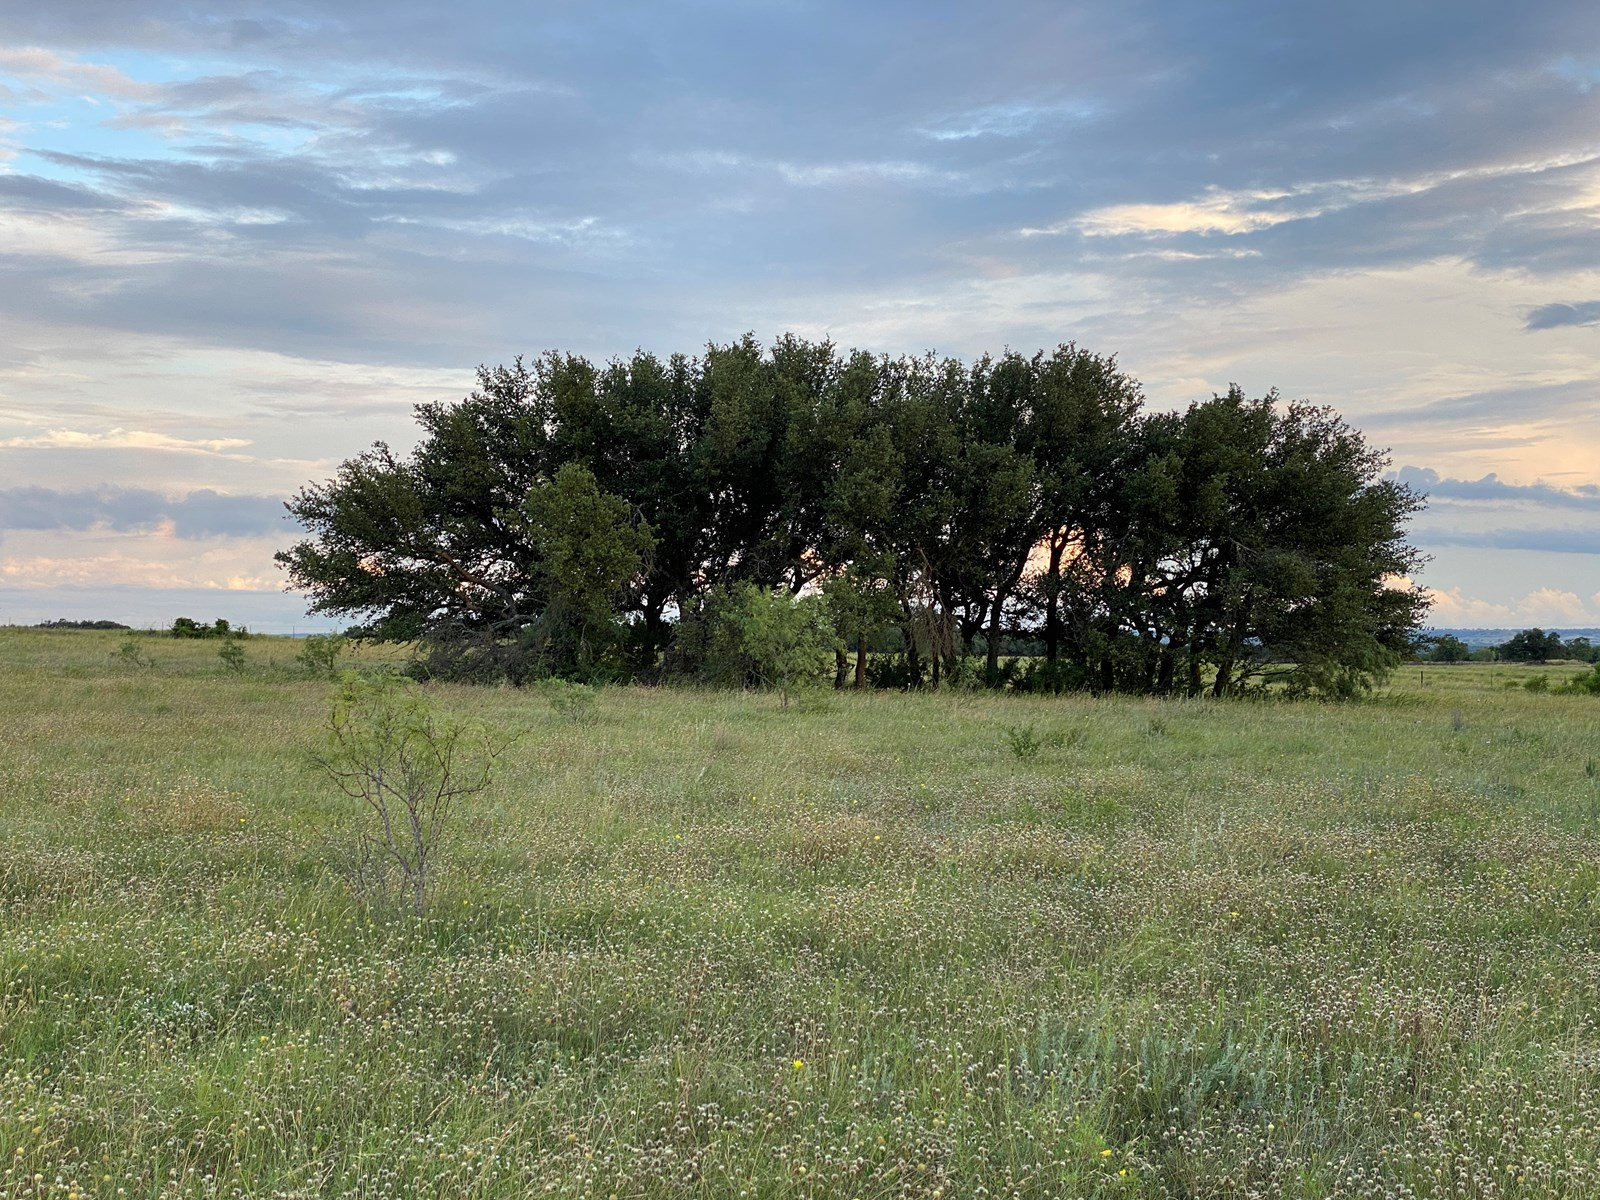 Land for Sale in Central Texas - 33 Acres in Hamilton County